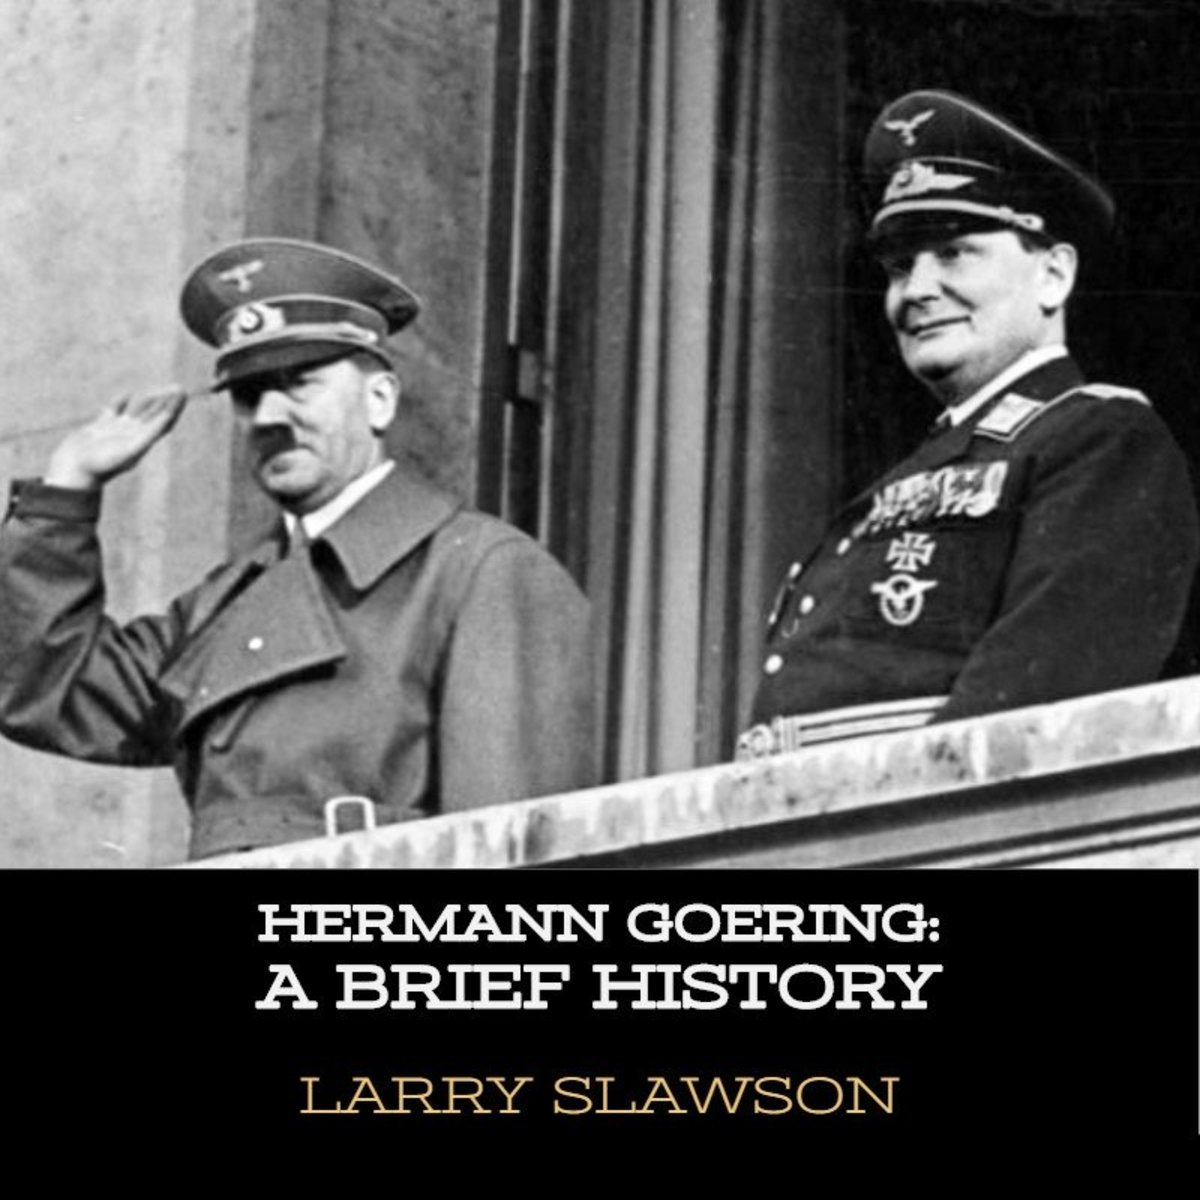 Hermann Goering alongside Adolf Hitler. During his career, Goering became one of Hitler's closest associates.